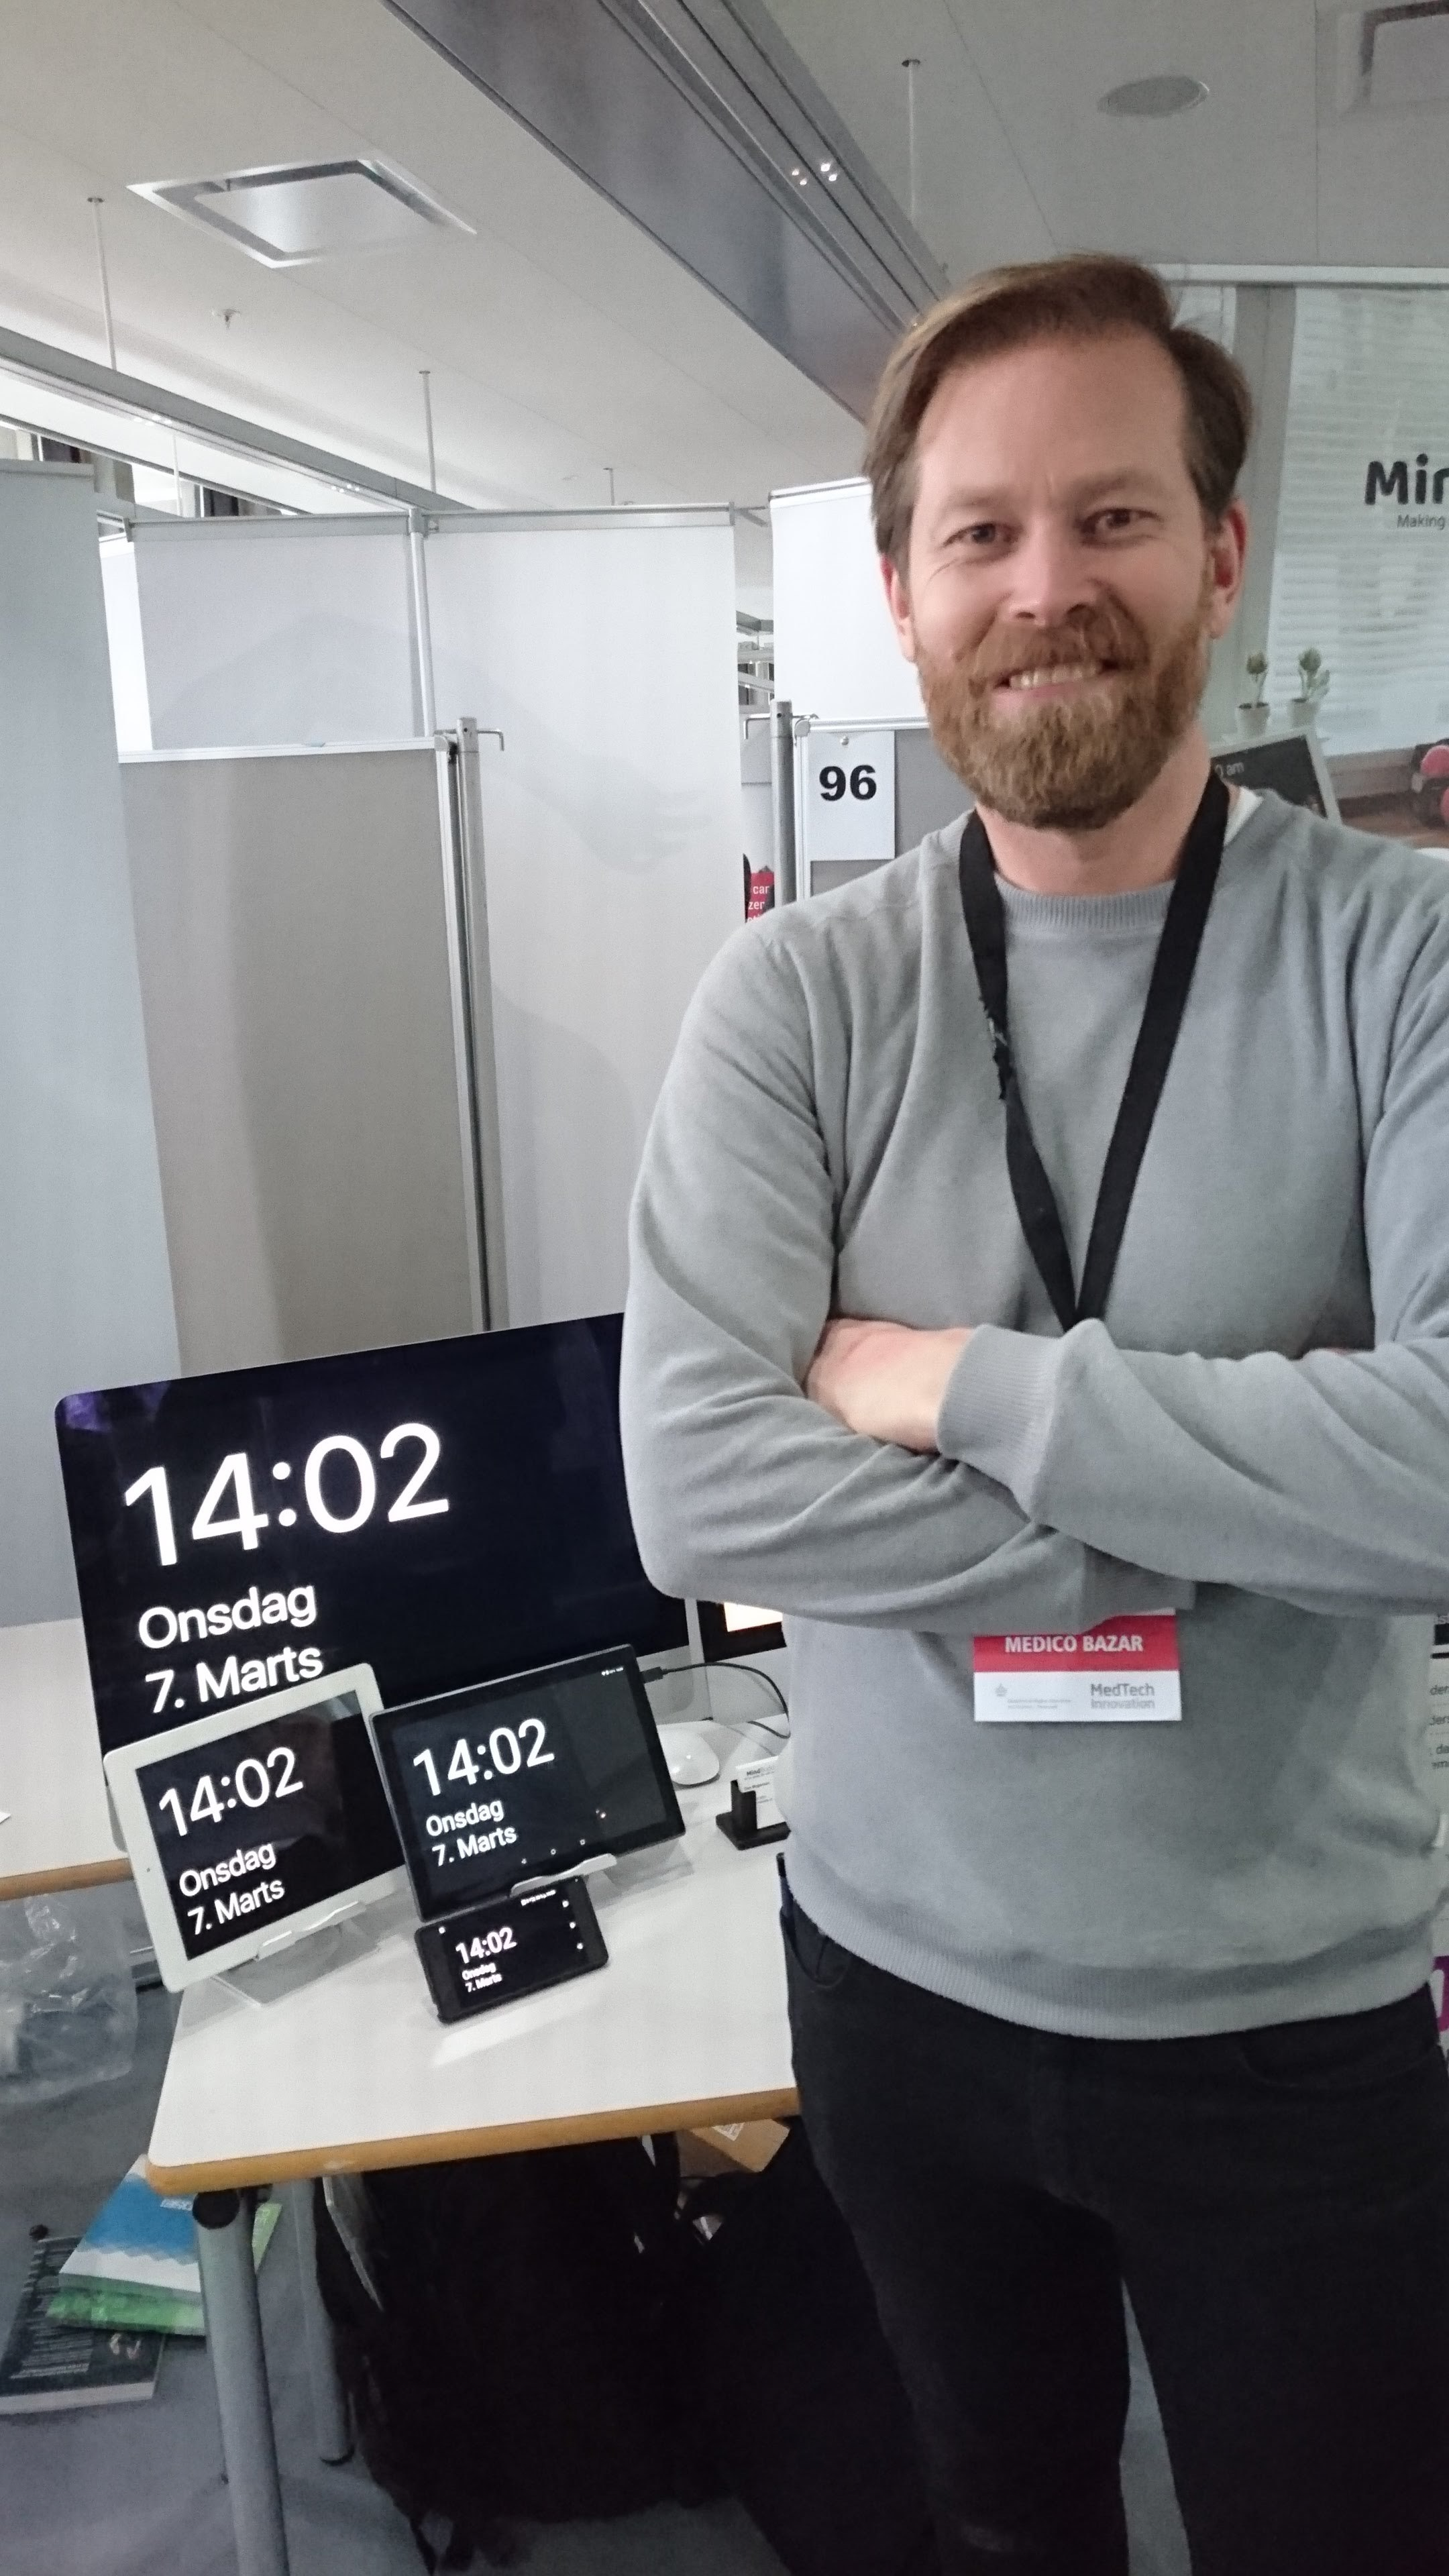 Medico Bazar at Danish Technical University /DTU 2018 - this was the first time MemoClock was shown to the public.